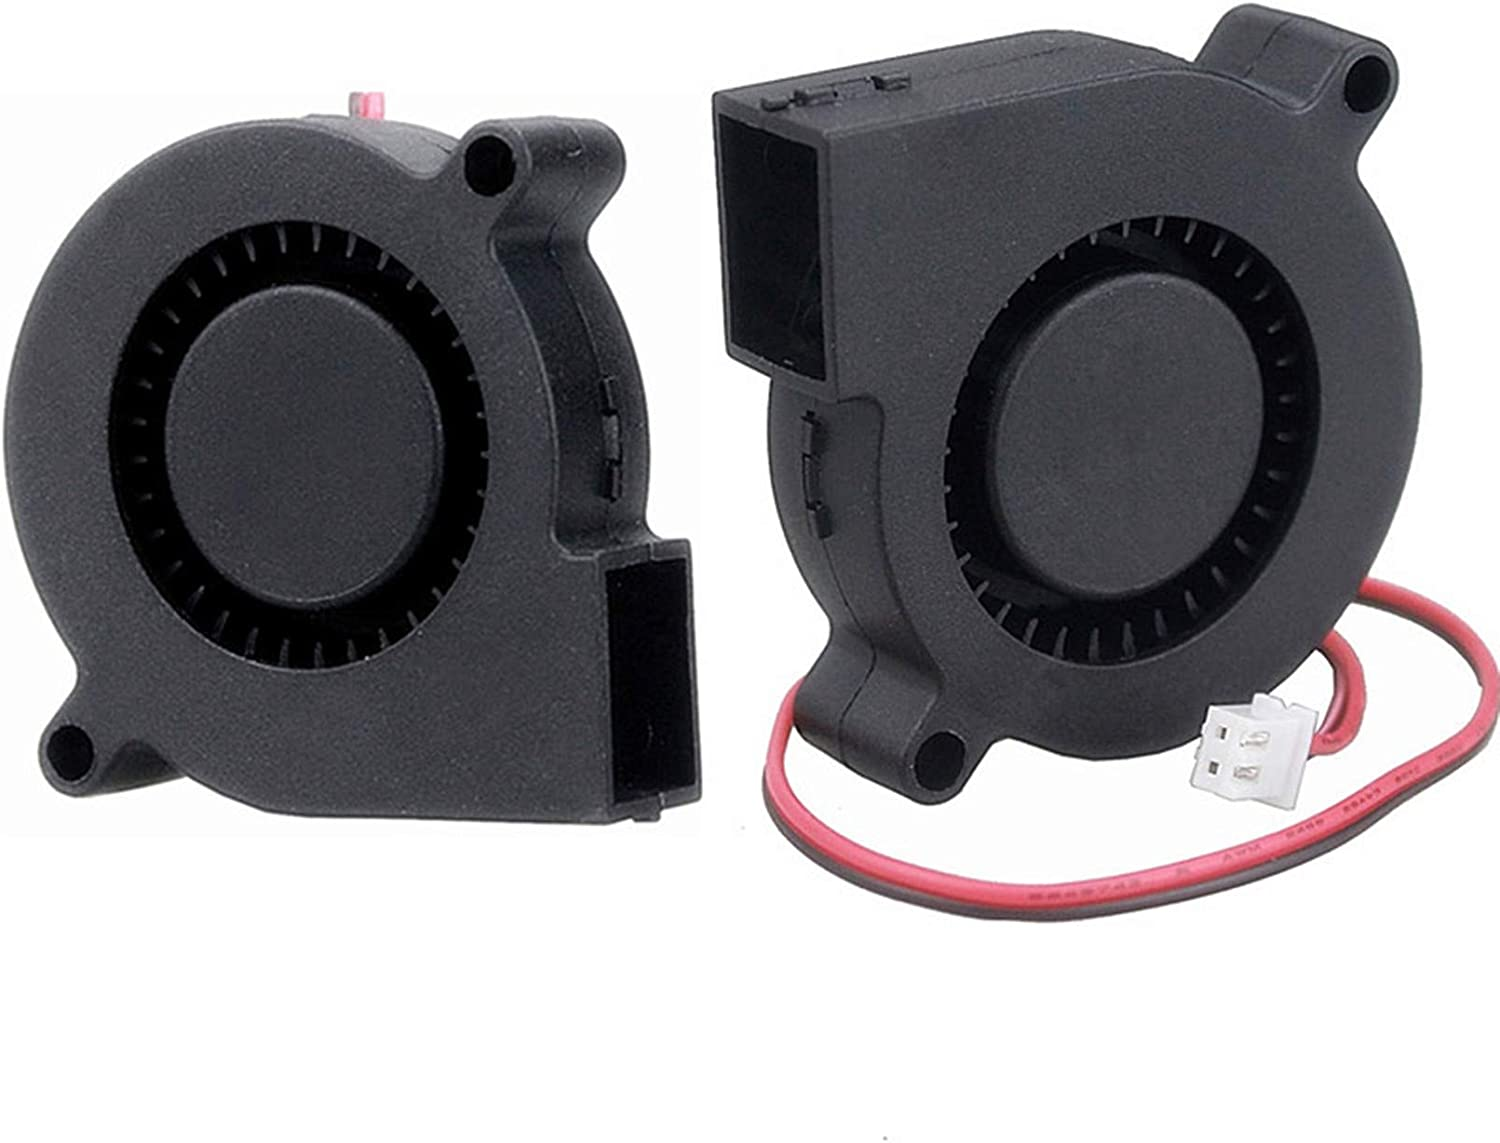 5015 Double Ball Bearing DC axial Compu Fan Cheap Discount is also underway 50x50x15MM Used for